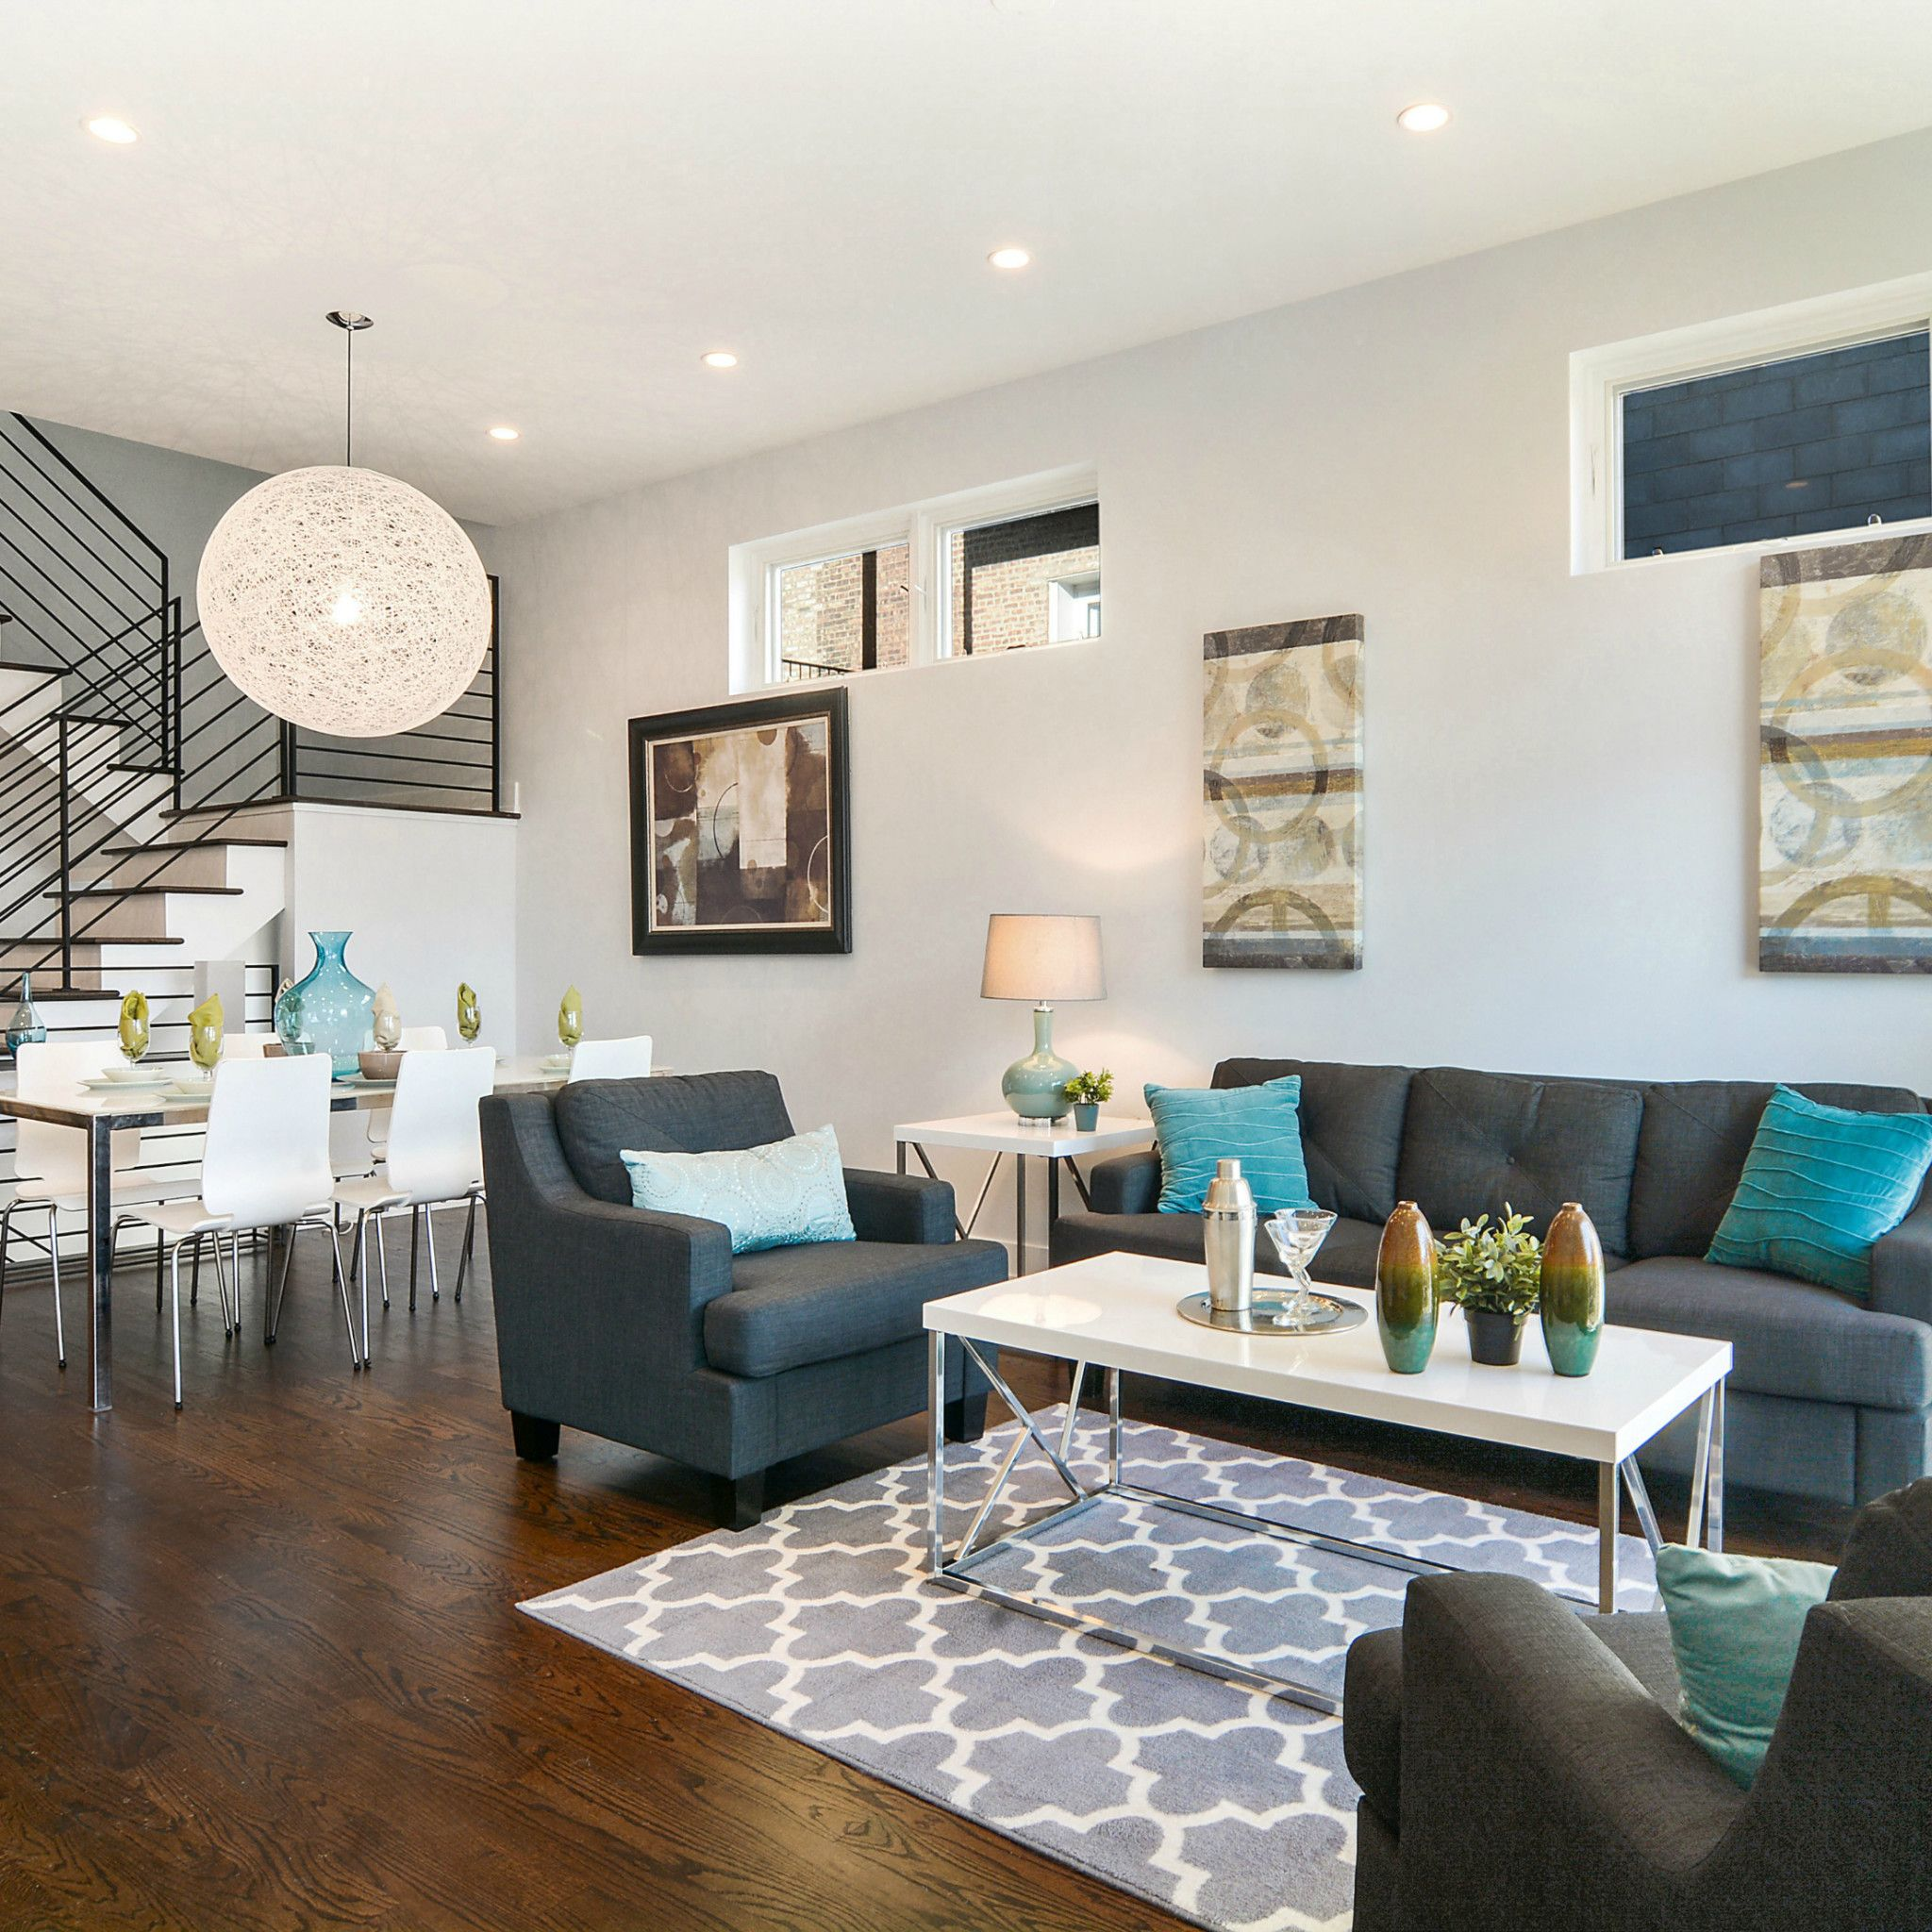 Interior Design Home Staging: Selling Your Home? Staging Is The Best Money You Can Spend